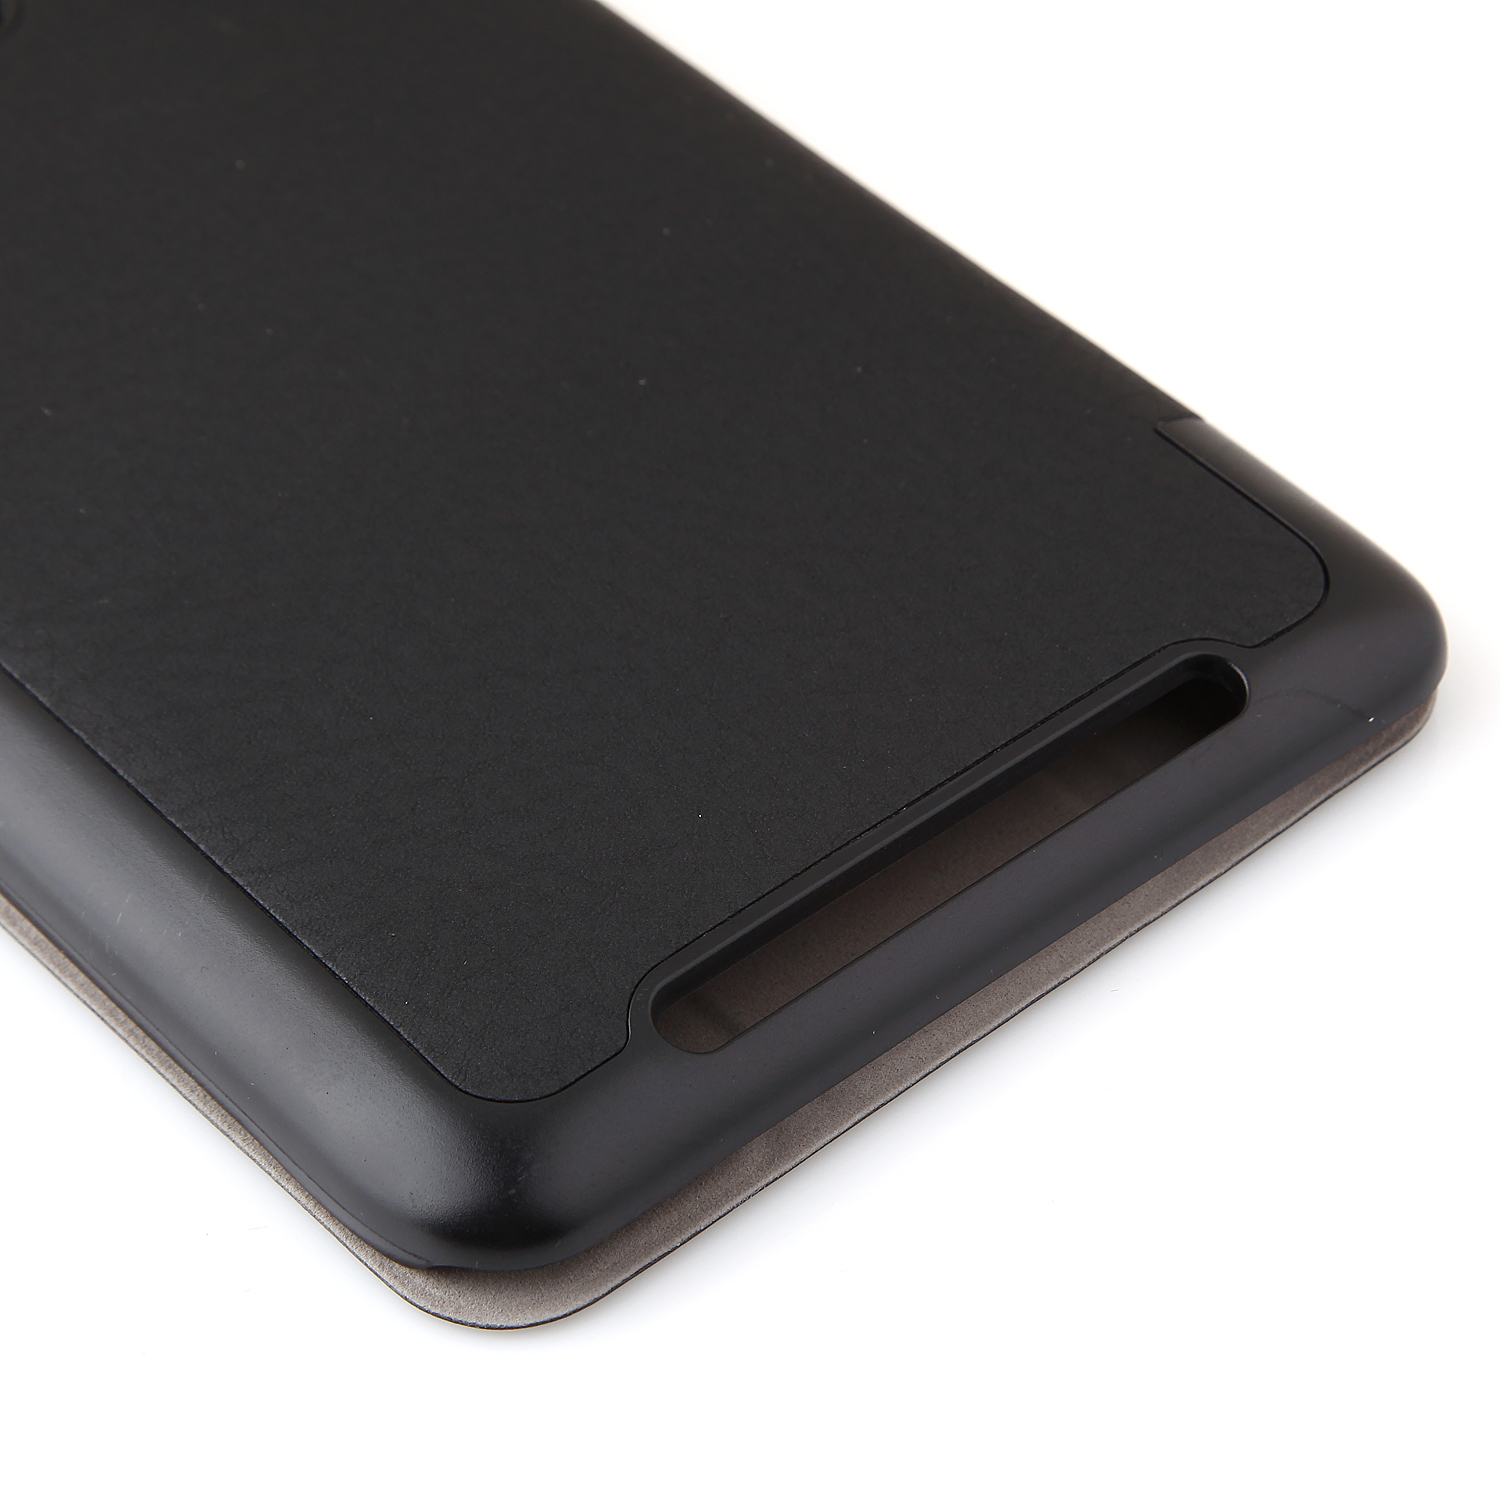 Protective PU Leather Stand Case Cover for Lenovo A3500 Tablet PC KP-69D Black